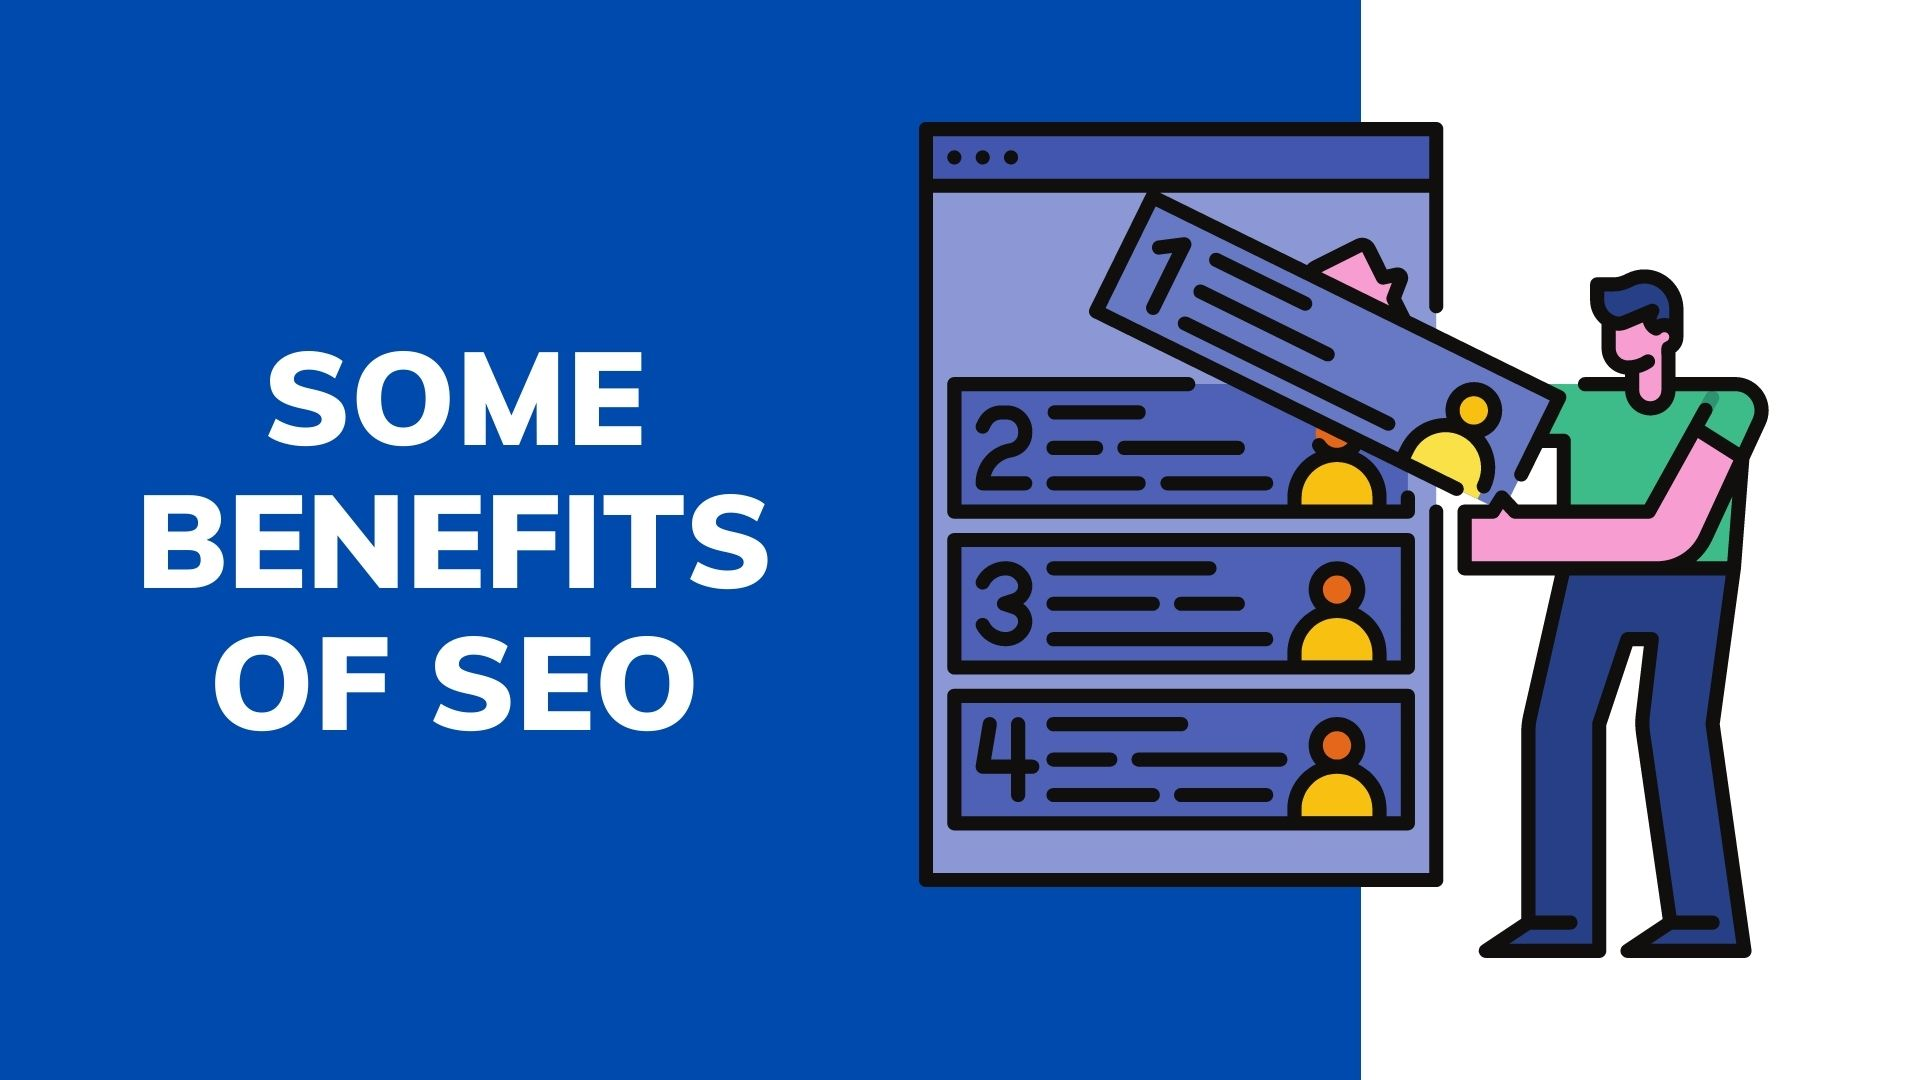 Some benefits of SEO